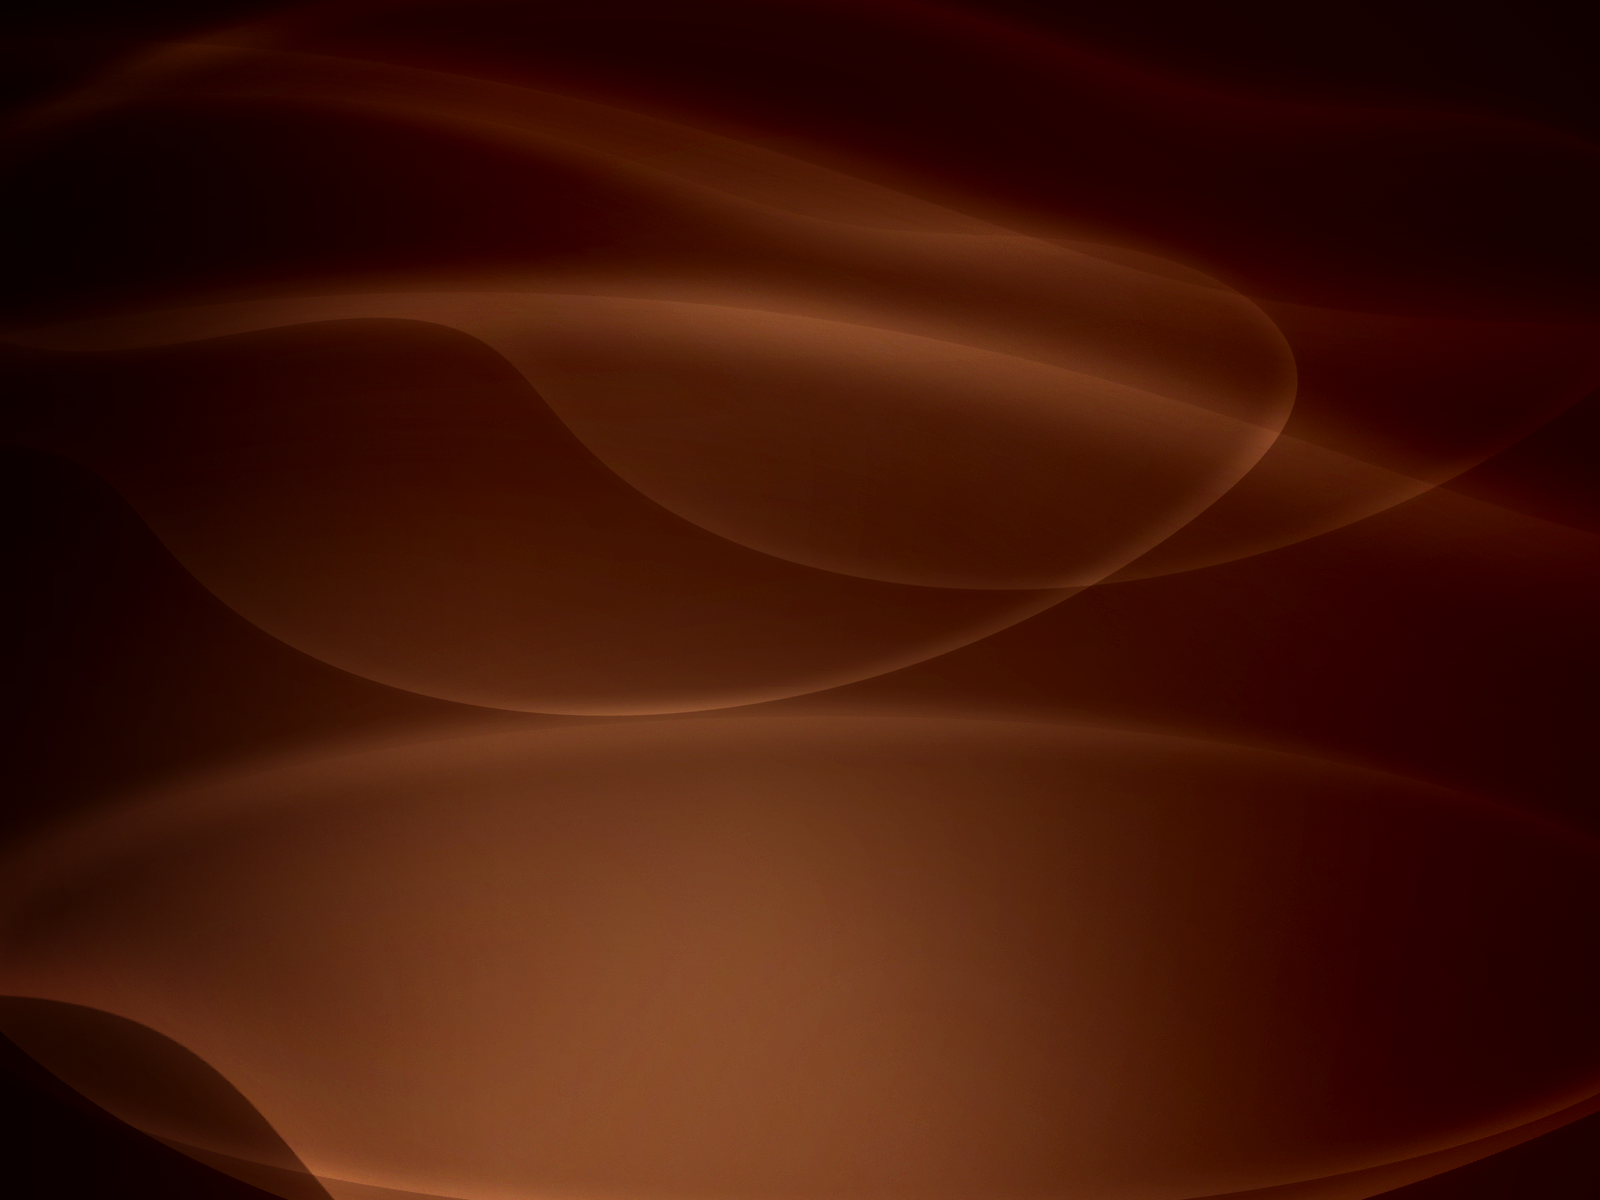 75 Brown Backgrounds, Wallpapers, Images, Pictures - Dark Brown Abstract Background , HD Wallpaper & Backgrounds